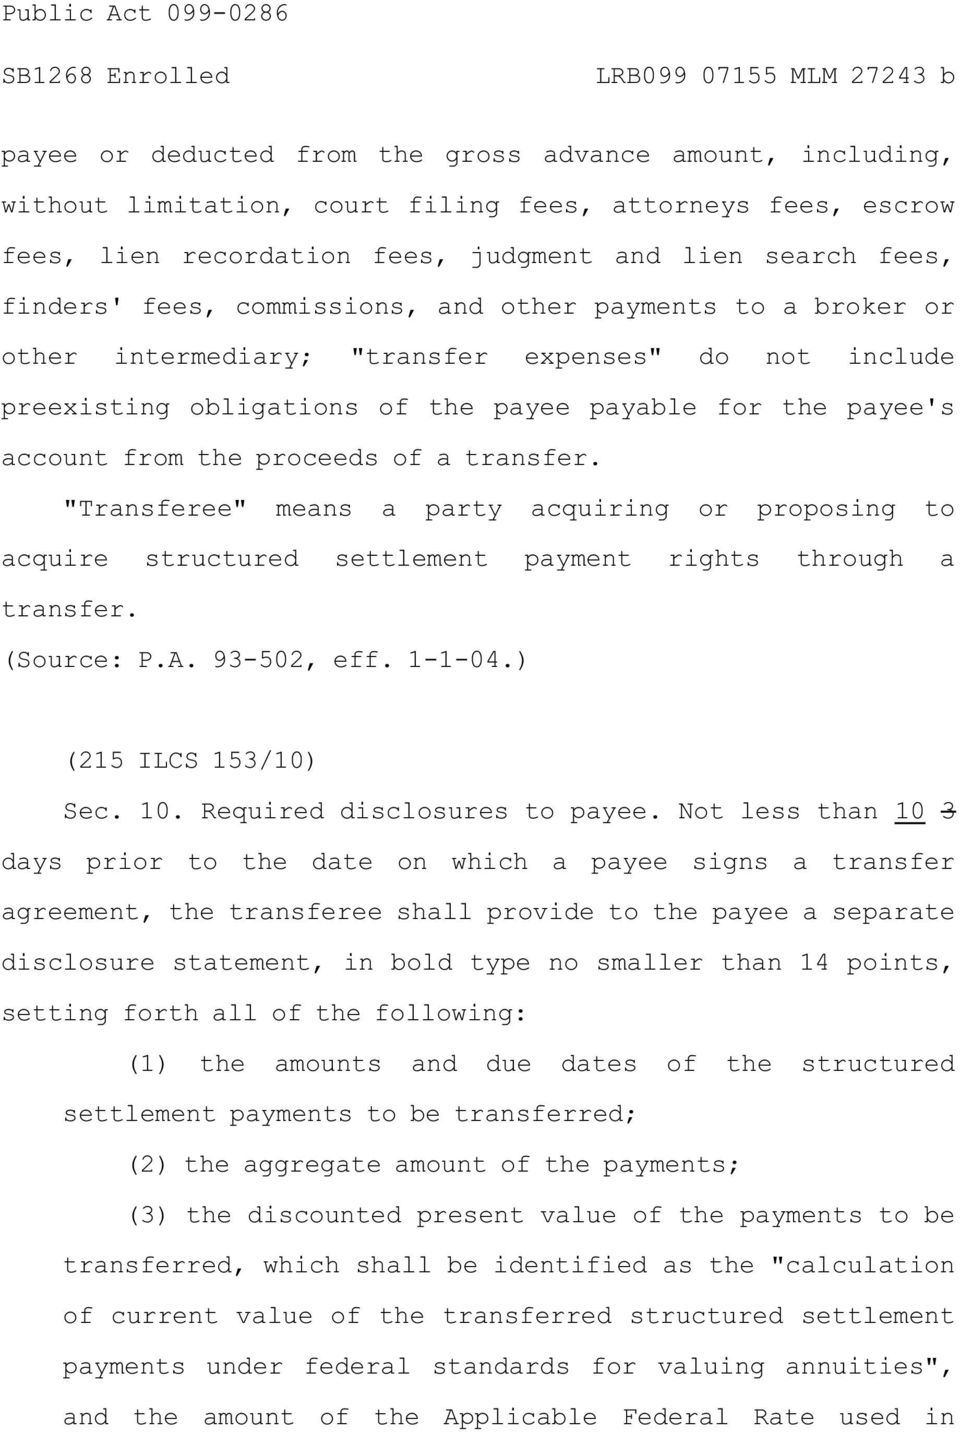 "transfer. ""Transferee"" means a party acquiring or proposing to acquire structured settlement payment rights through a transfer. (Source: P.A. 93-502, eff. 1-1-04.) (215 ILCS 153/10) Sec. 10."